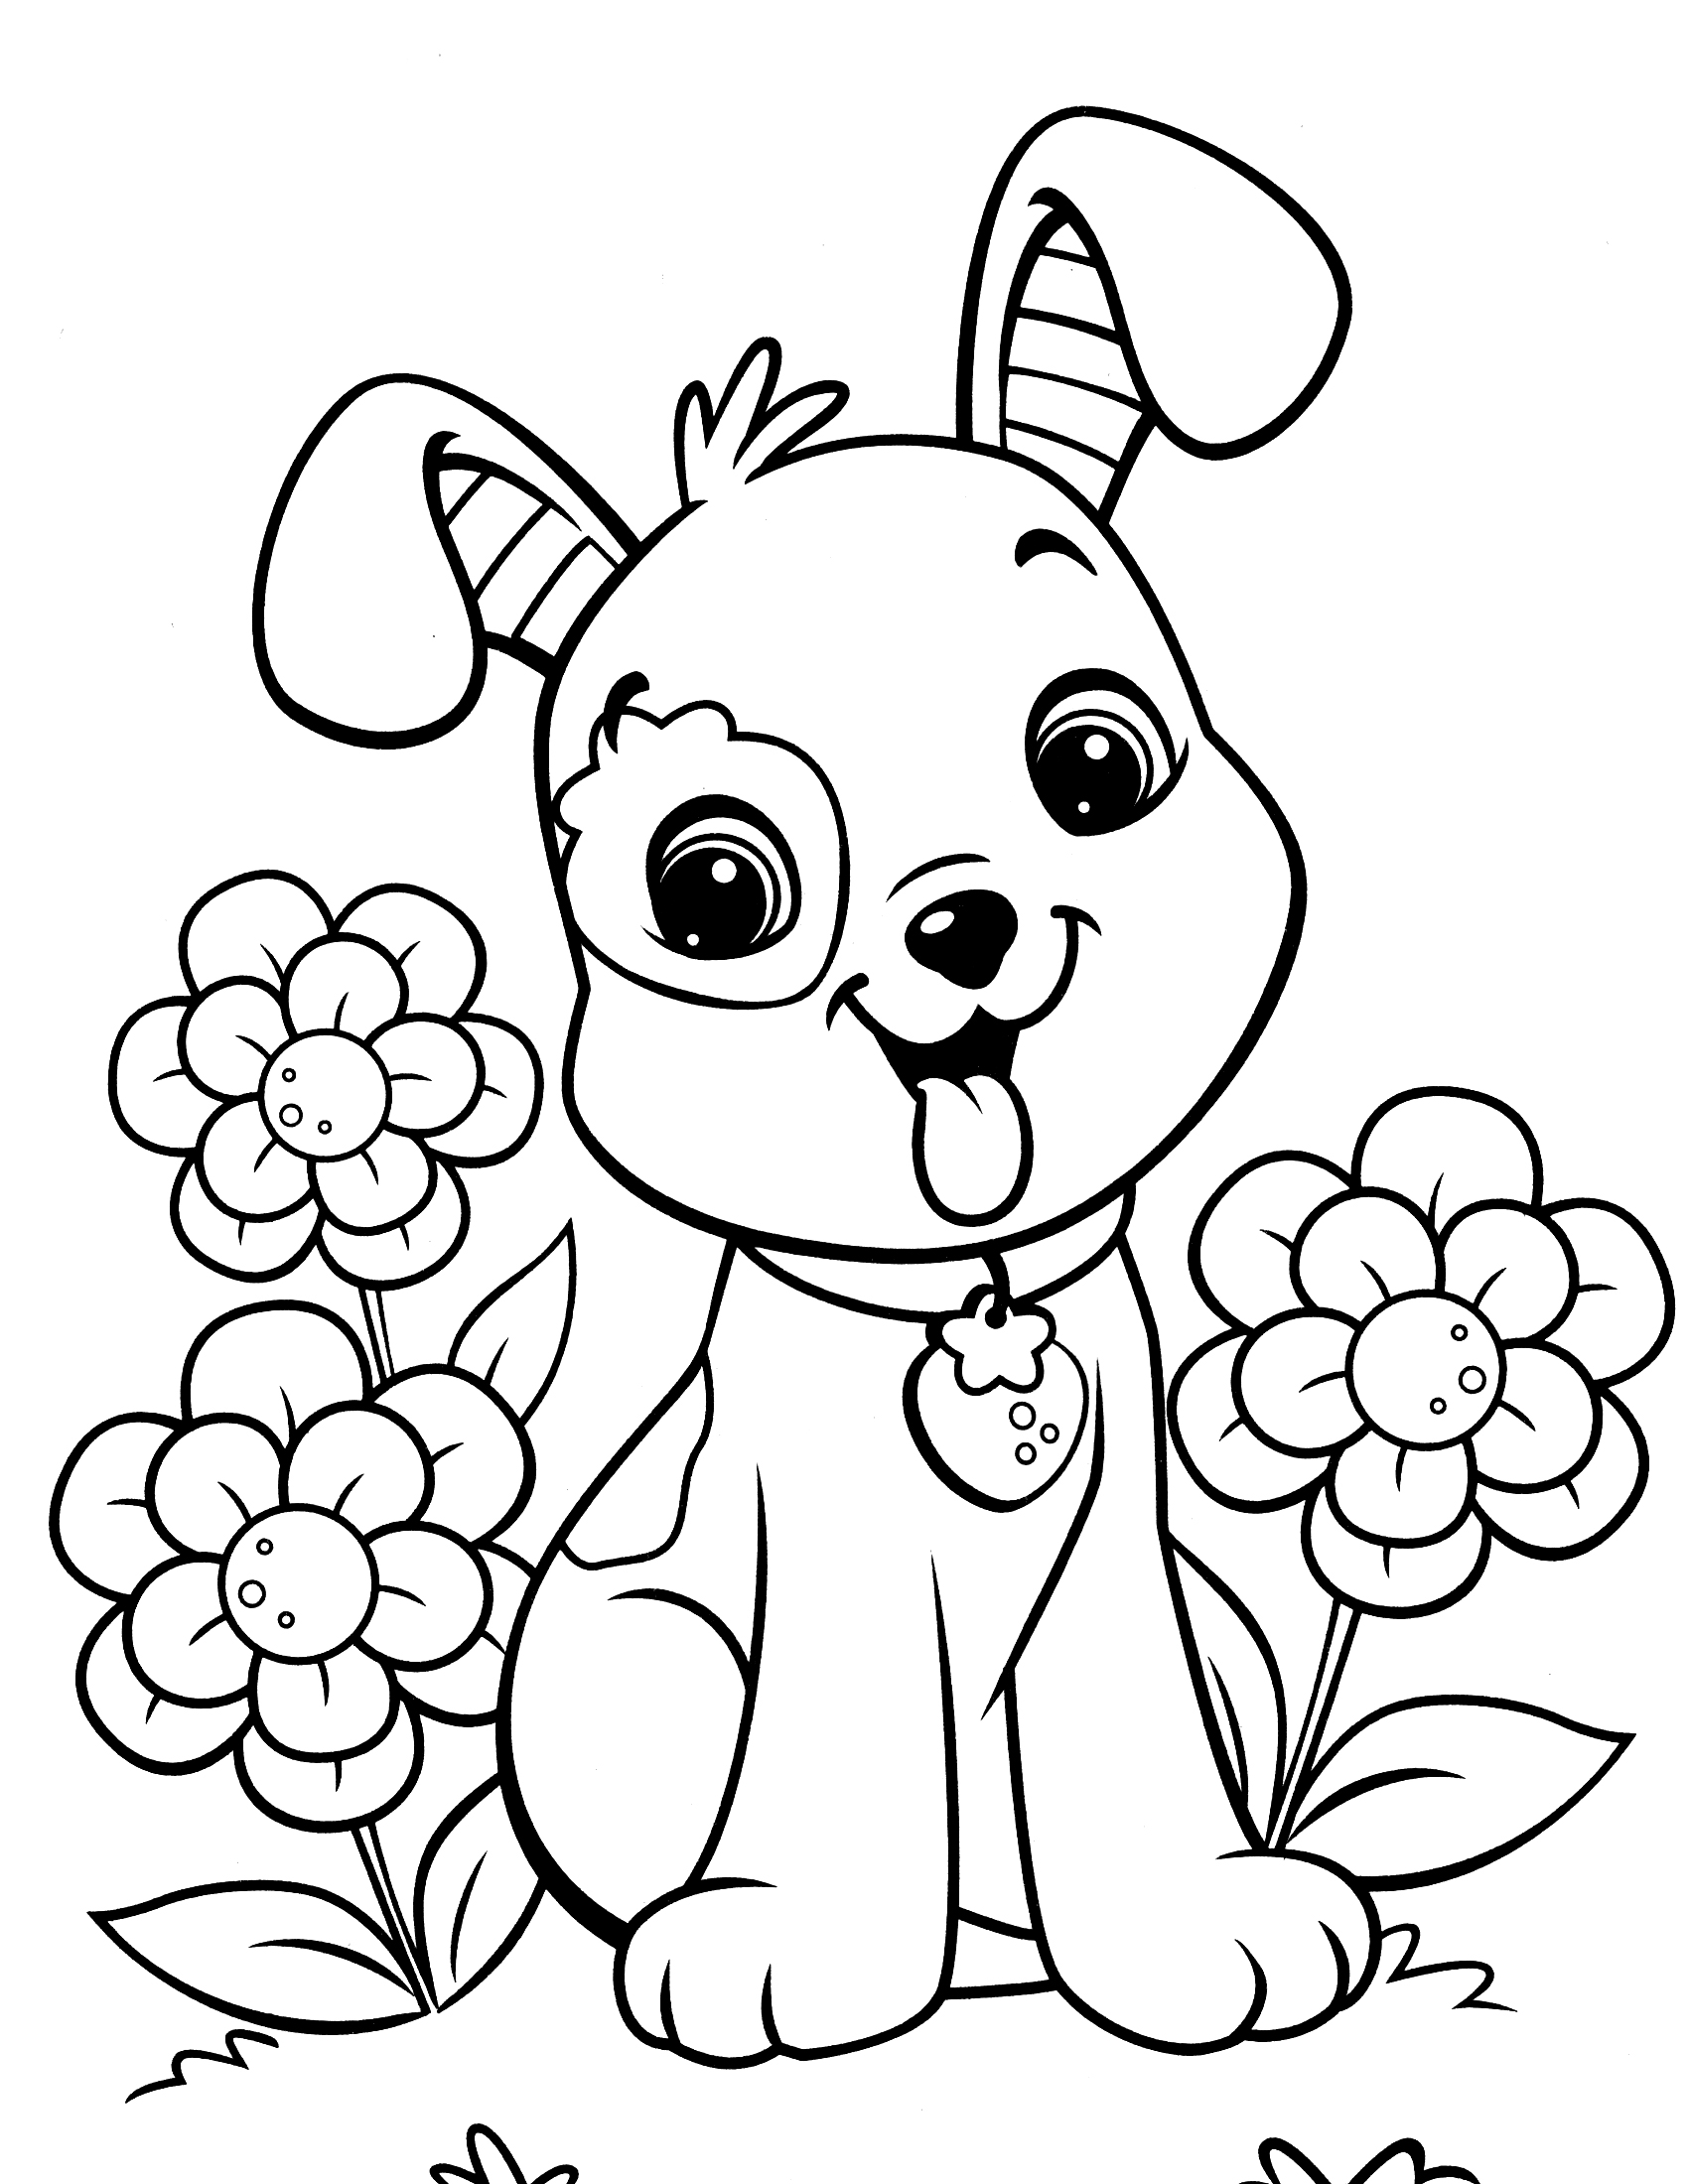 coloring cute dog cute dog coloring pages to download and print for free coloring cute dog